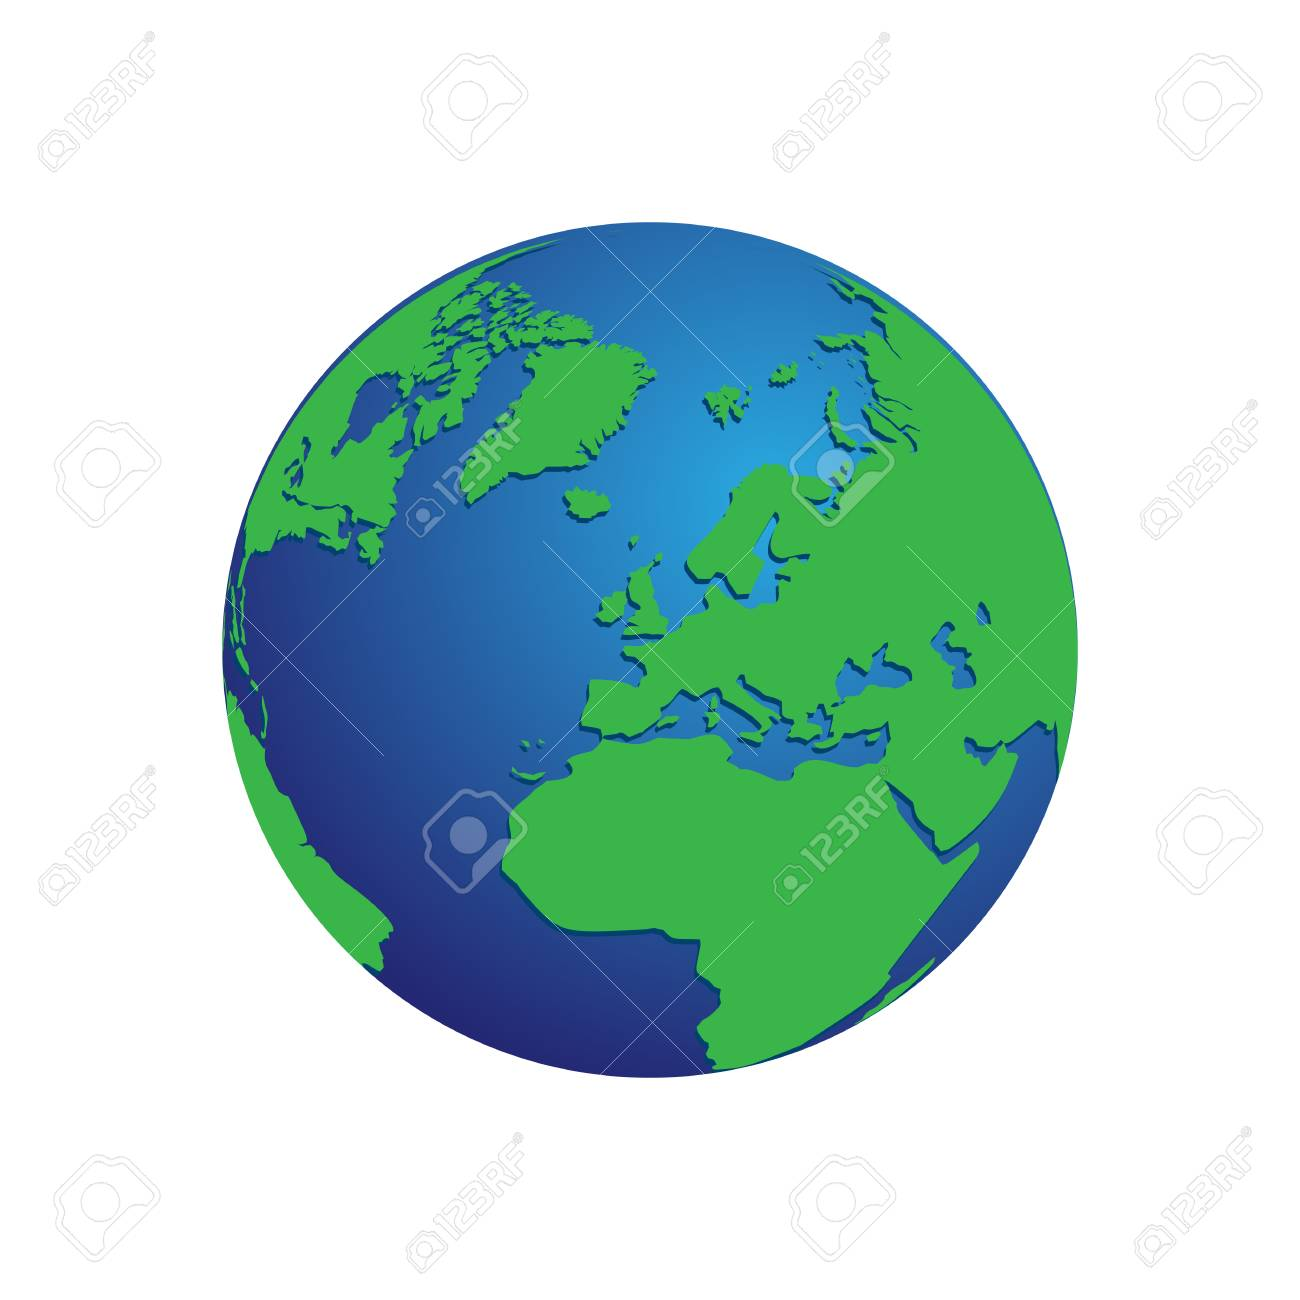 Realistic Blue And Green 3d World Map Globe Isolated Background